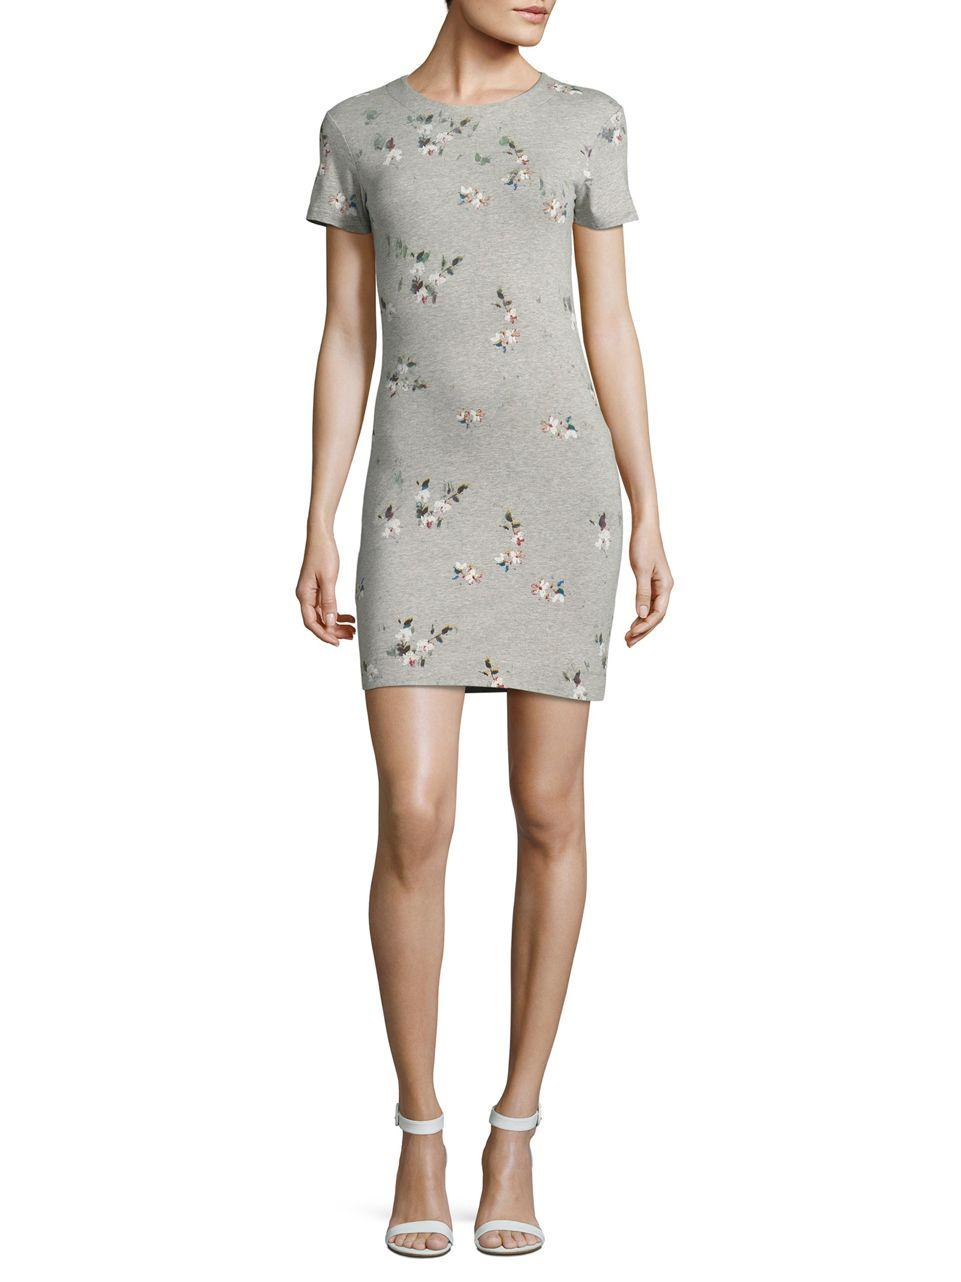 Lyst french connection floral t shirt dress in gray for French connection t shirt dress